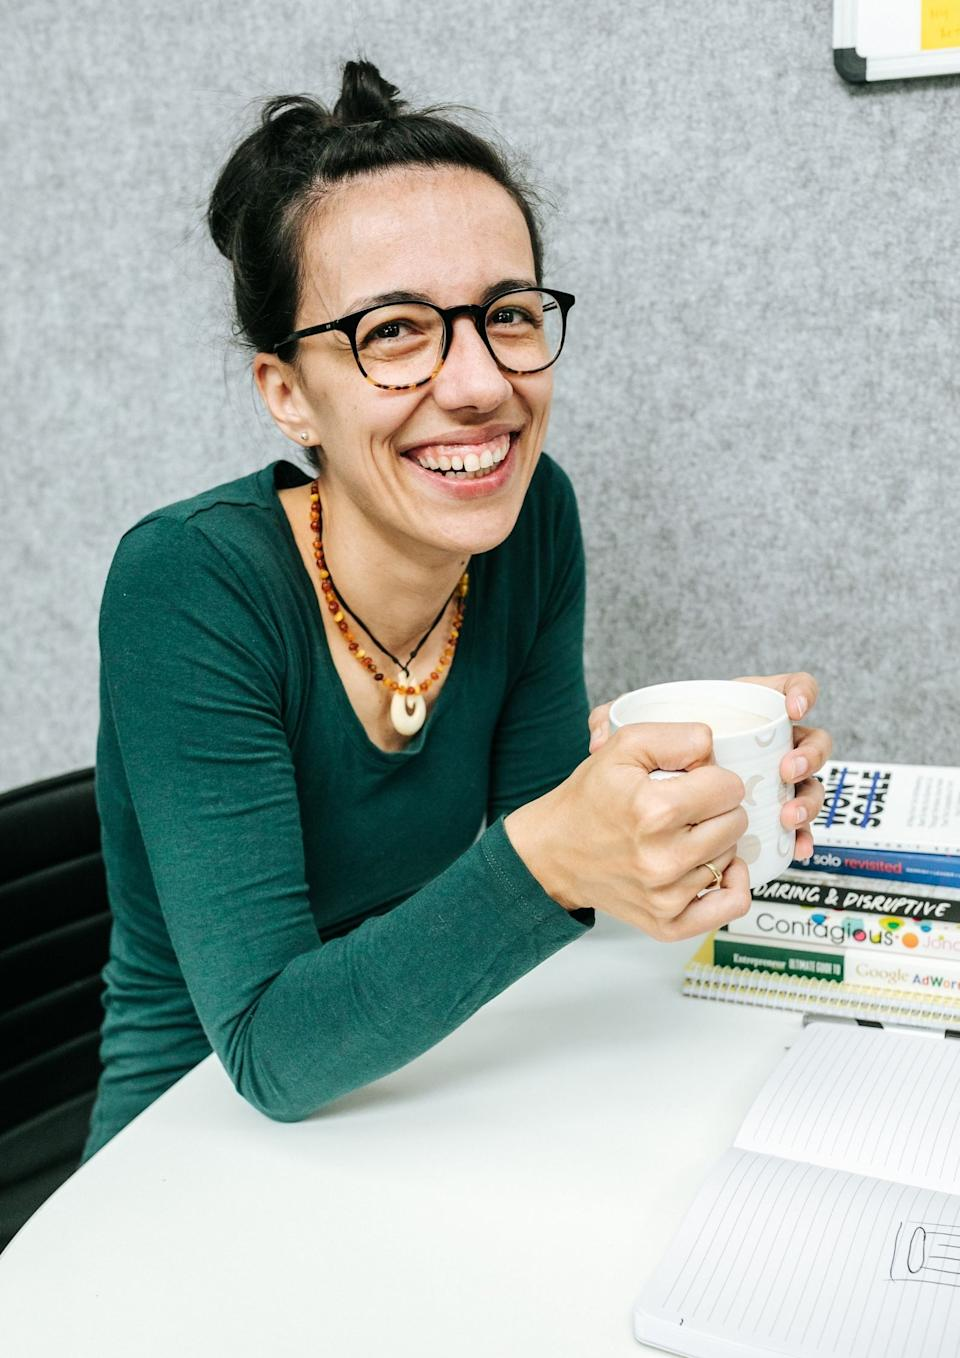 Pictured: Branka Injac Misic seated at office desk with mug in hand, smiling. Image: Supplied